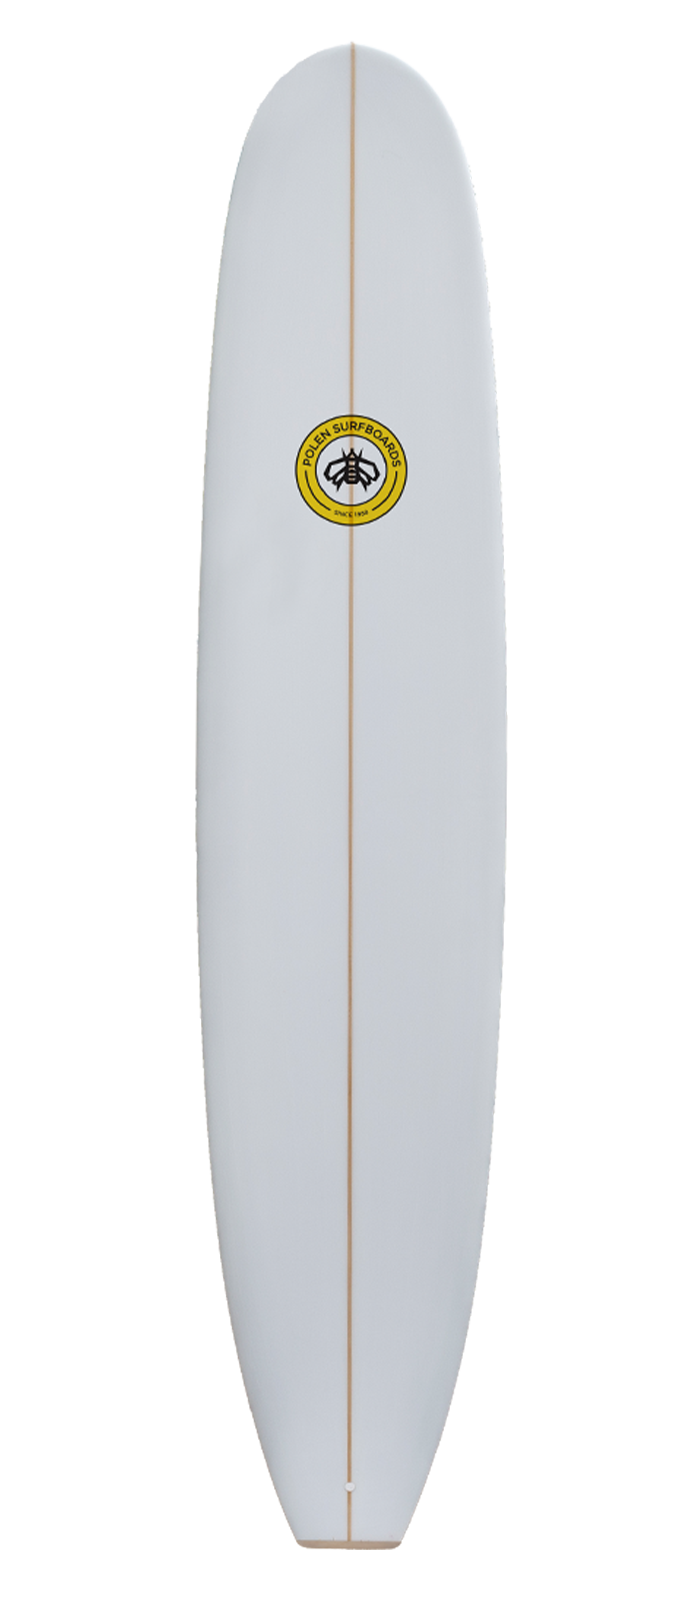 GRACE surfboard model